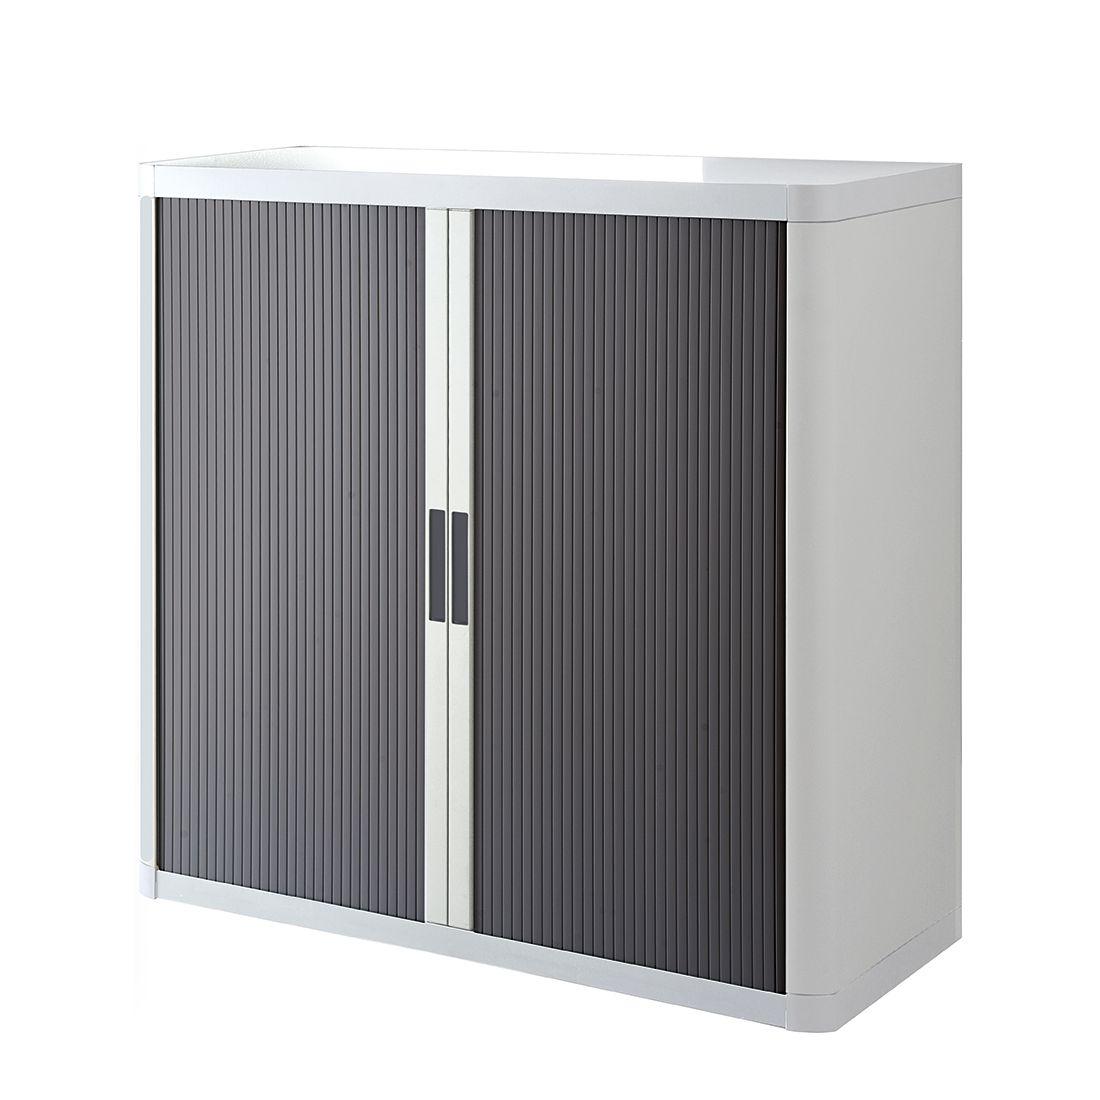 Armoire à dossiers easyOffice - Blanc / Gris - 104 cm, easy Office und Paperflow